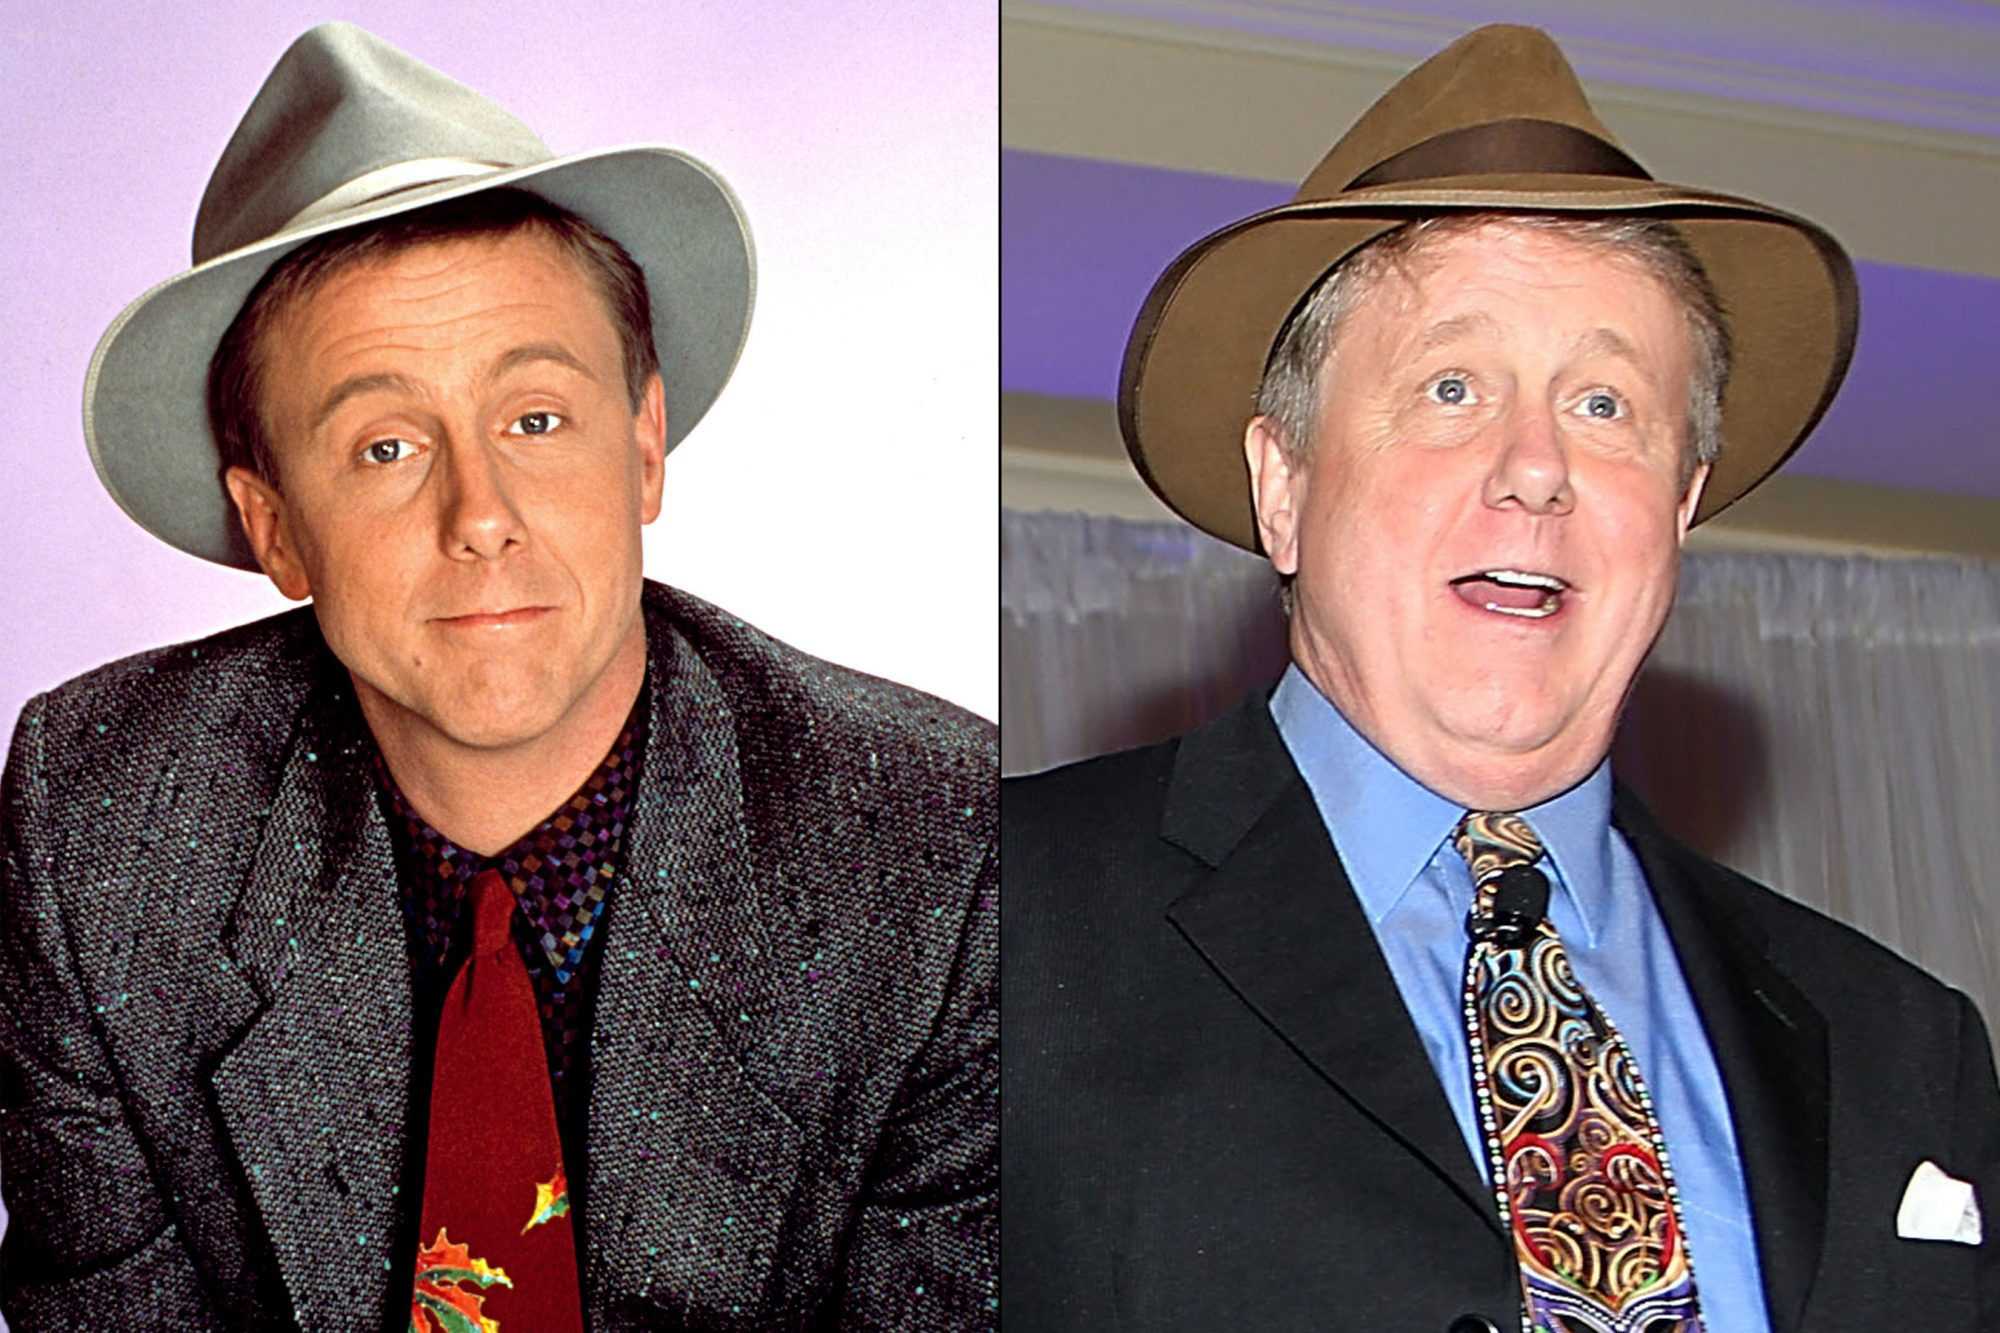 Harry Anderson (Judge Harry Stone)